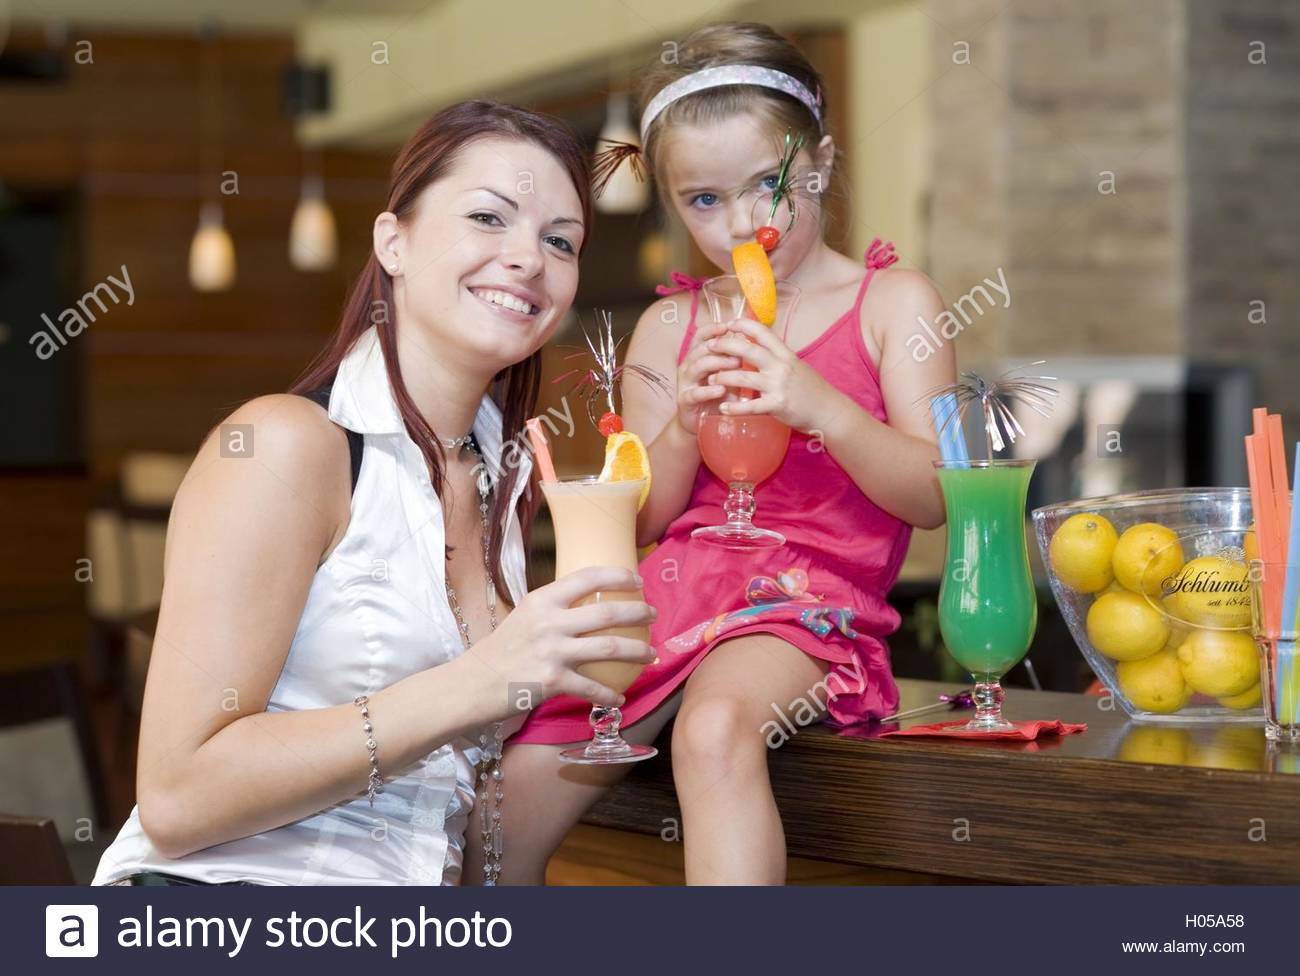 Kindercocktails Stock Photos Kindercocktails Stock Images Alamy